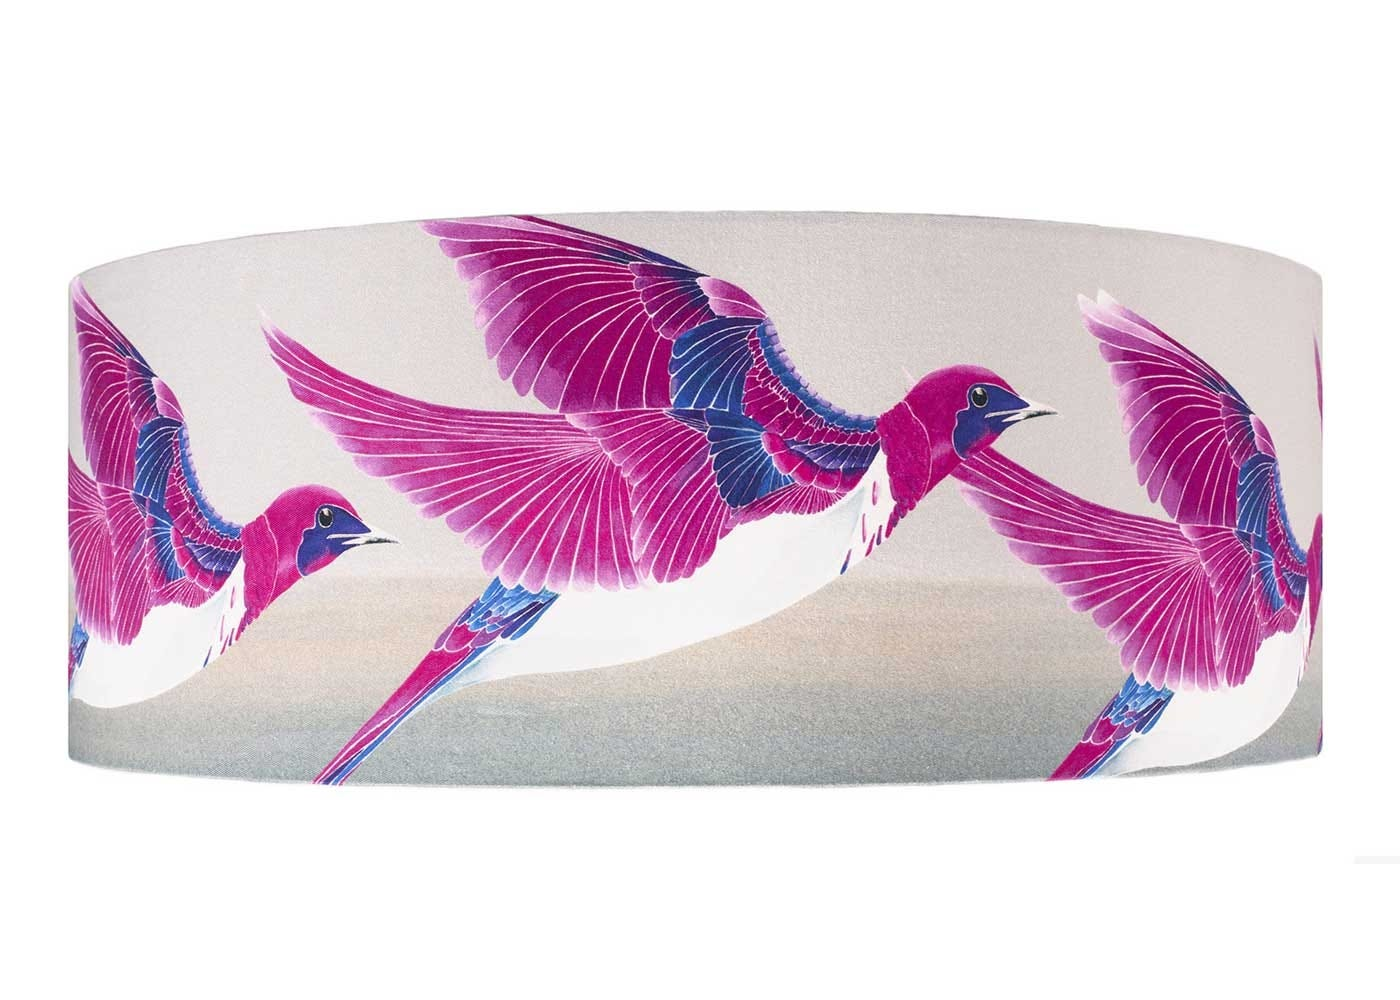 Violet backed starling lampshade extra large